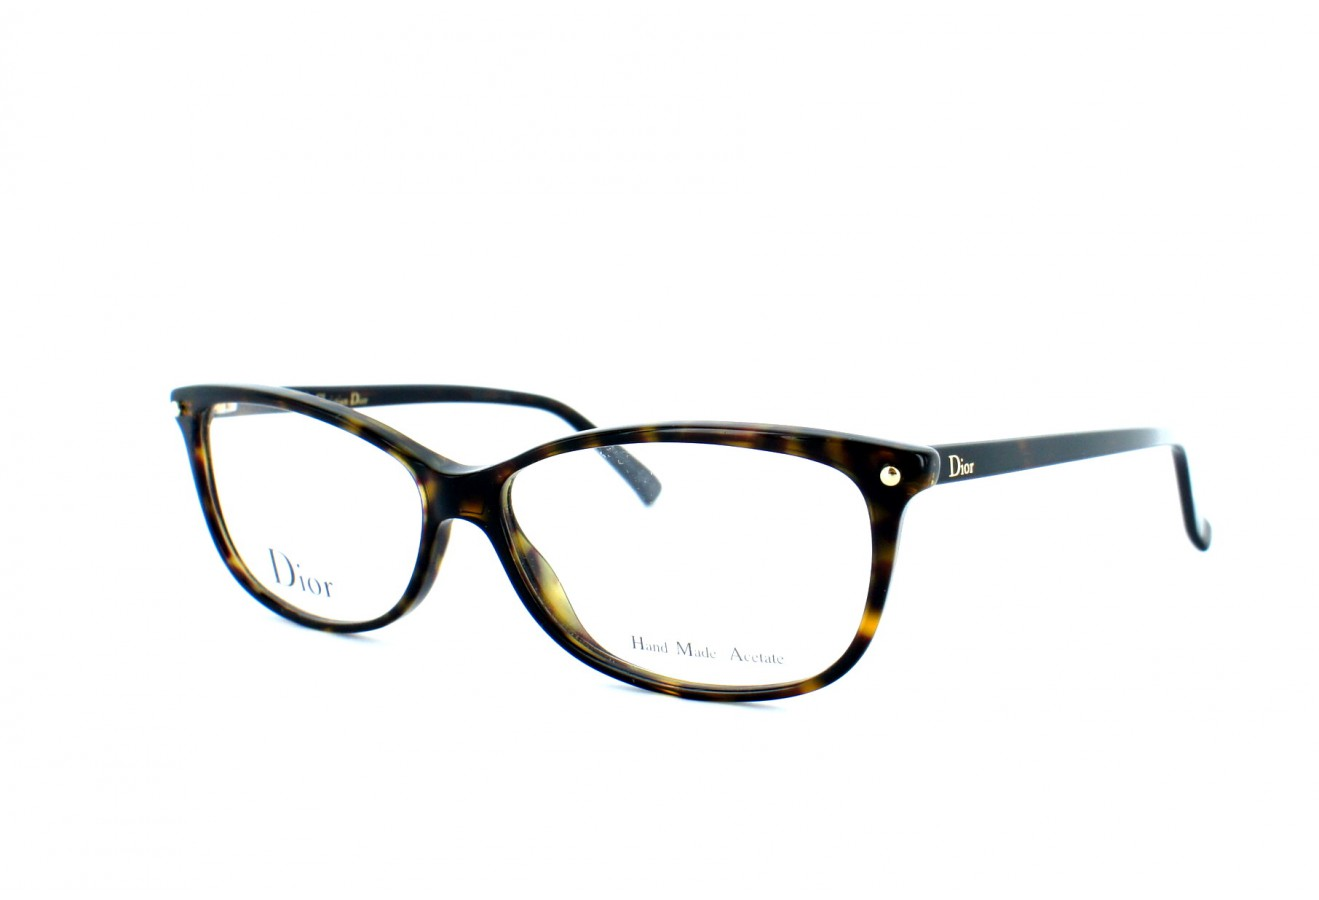 7cae21ab79077c lunette dior femme ecaille, Visiofactory